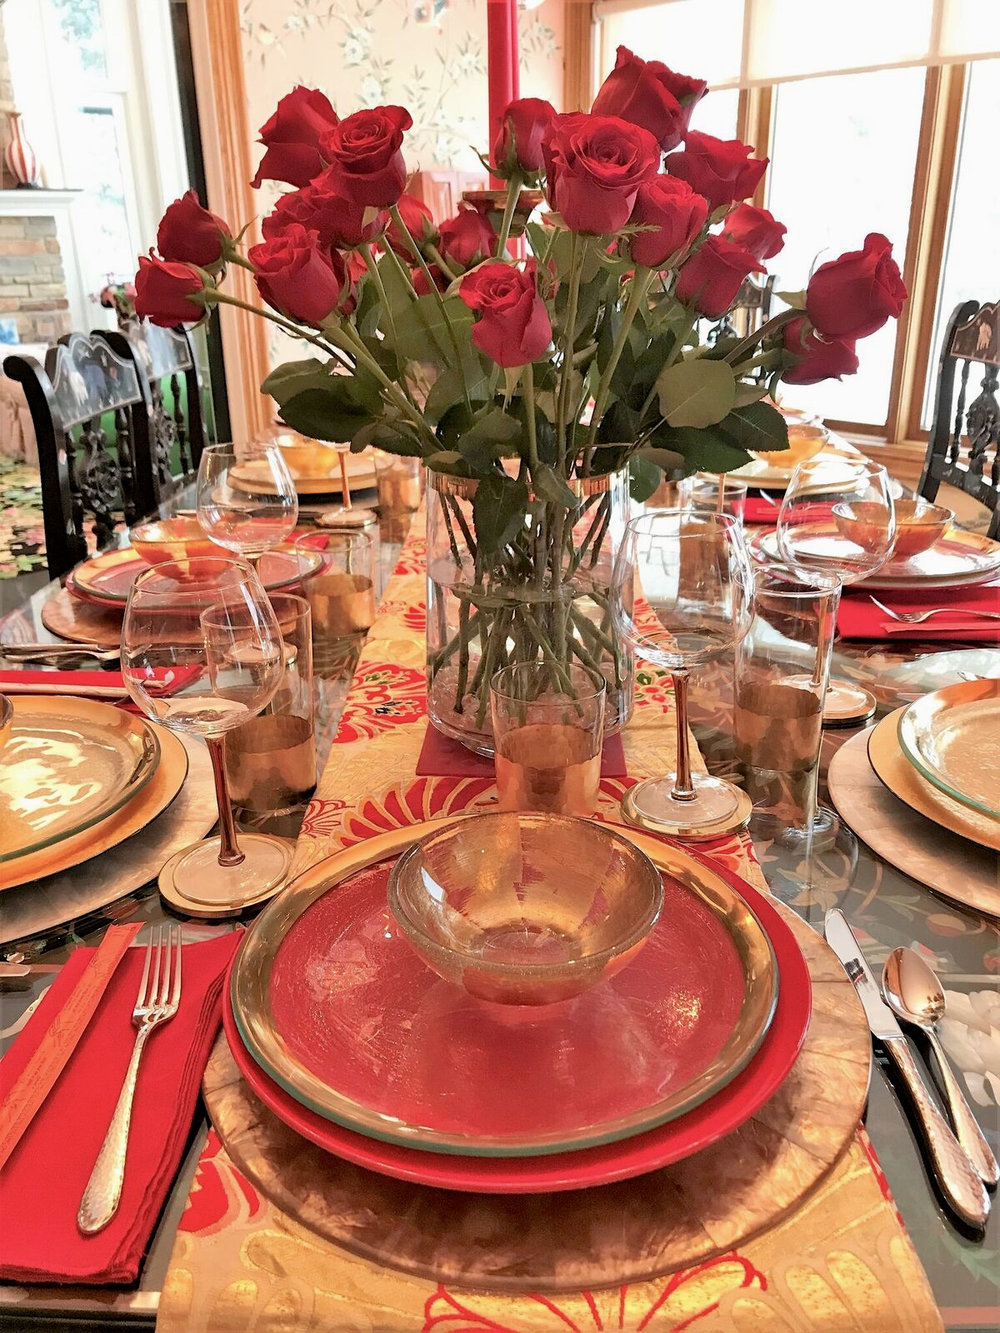 teri_dining_tabletop_aroundtheworldin80days_W3Bookclub_spiritedtable_photo5.jpg